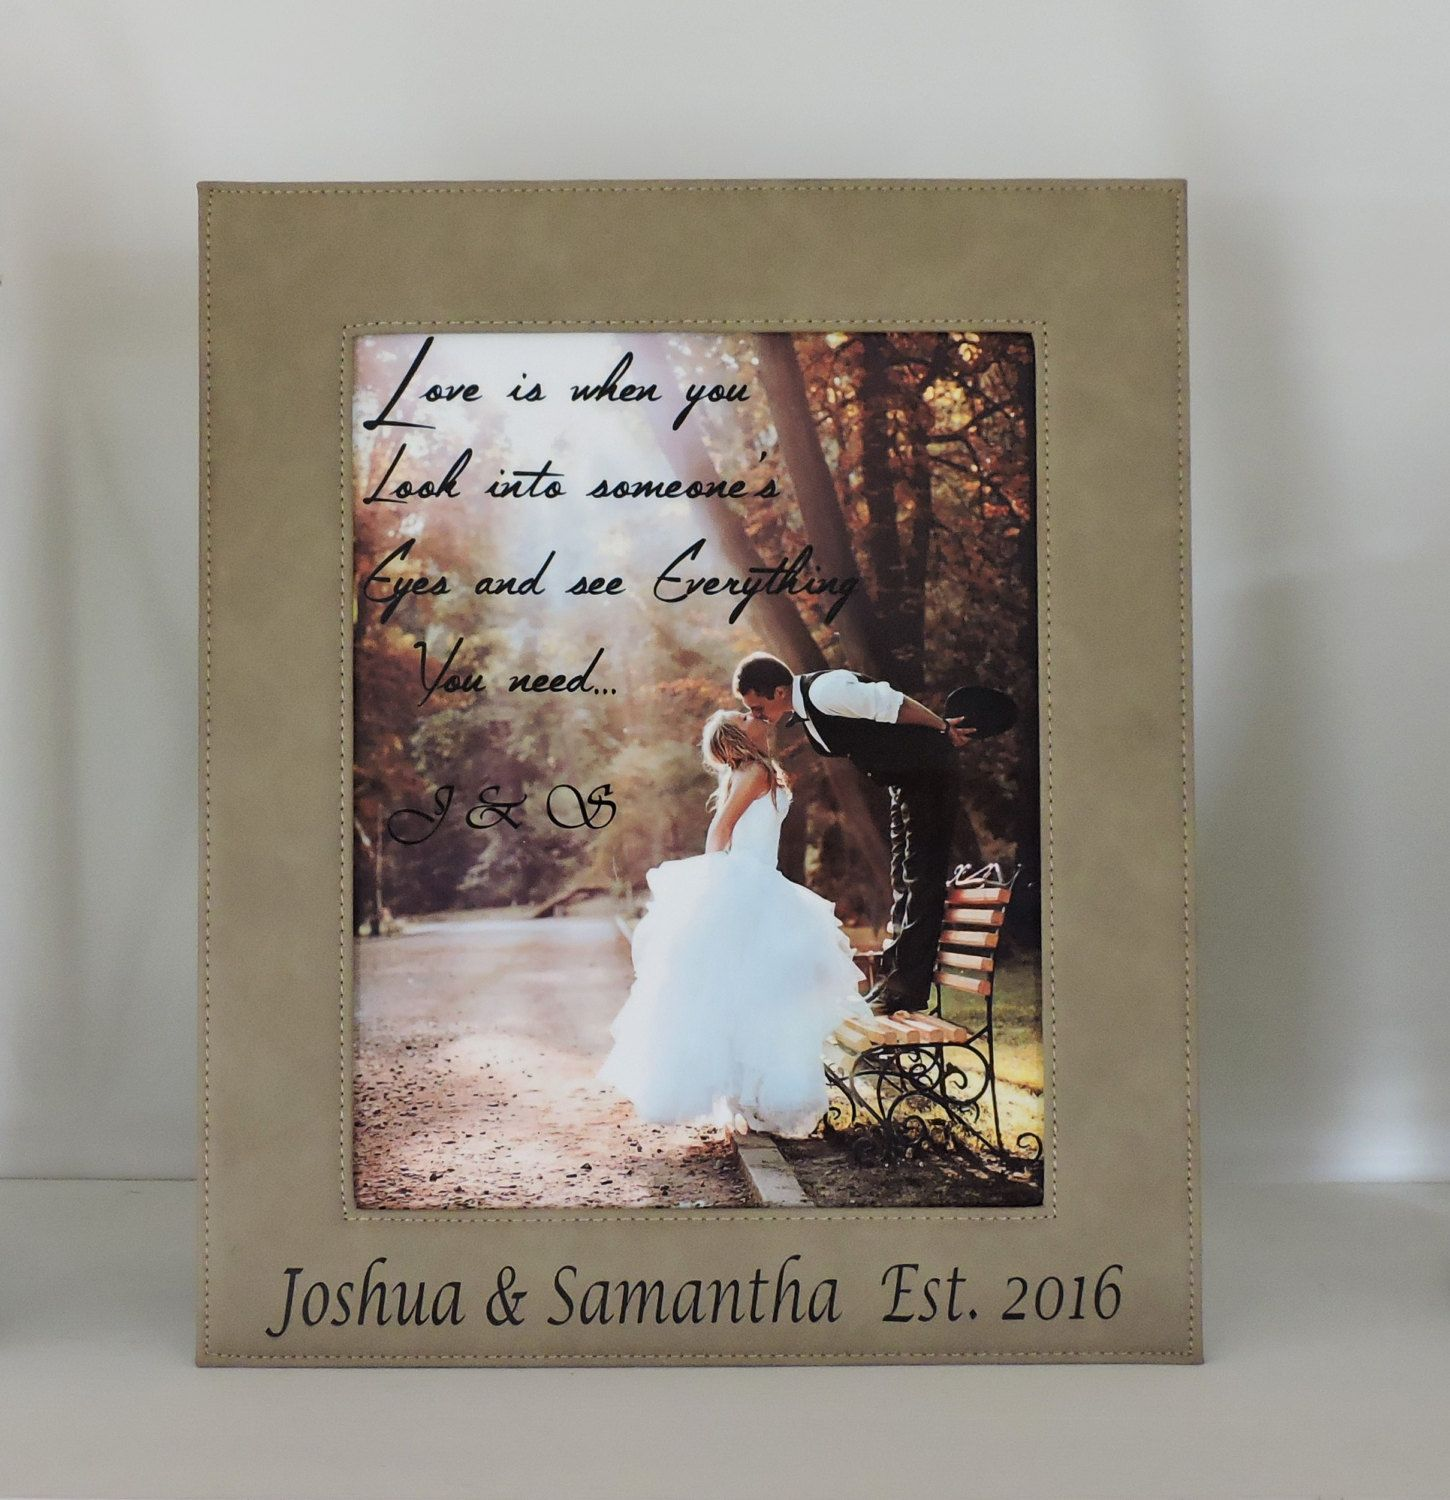 3rd anniversary leather gift leather wedding anniversary gift 3rd anniversary leather gift leather wedding anniversary gift 8x10 photo frame with and personalized jeuxipadfo Image collections